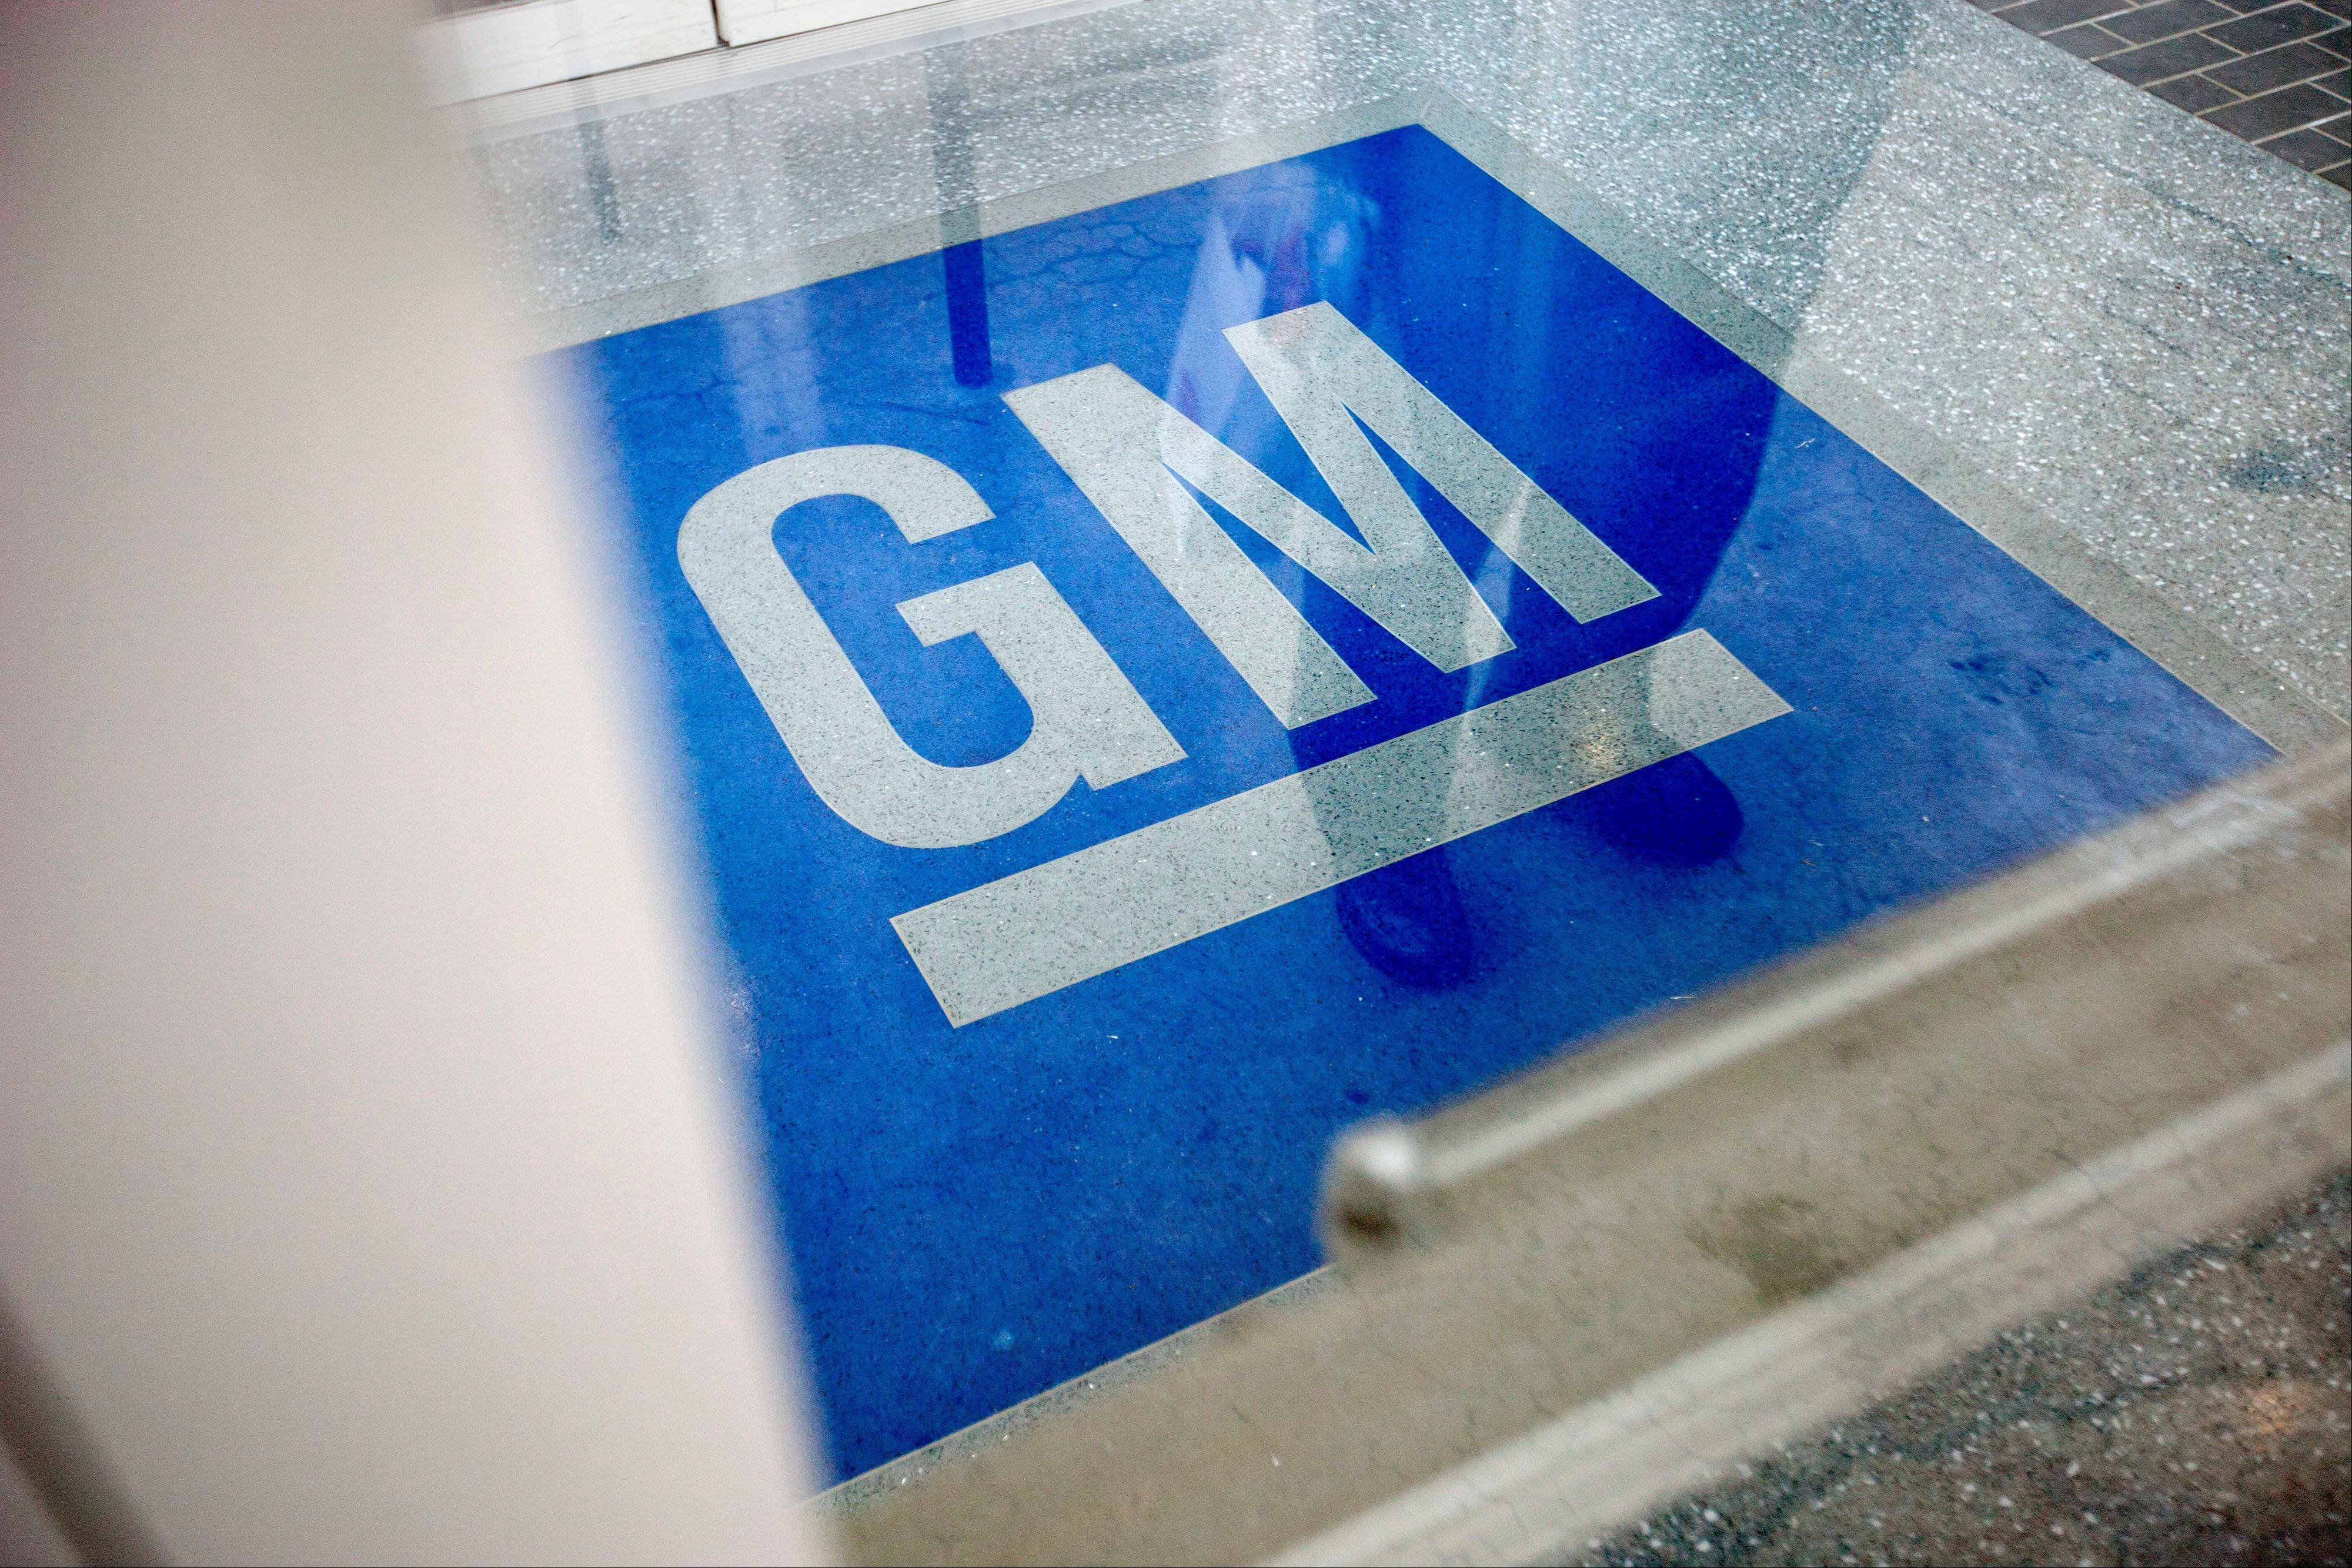 The U.S. government is taking advantage of the recent run-up in General Motors stock to sell off another 30 million shares in the auto giant that it acquired in a bailout, according to the Treasury Department, Wednesday.